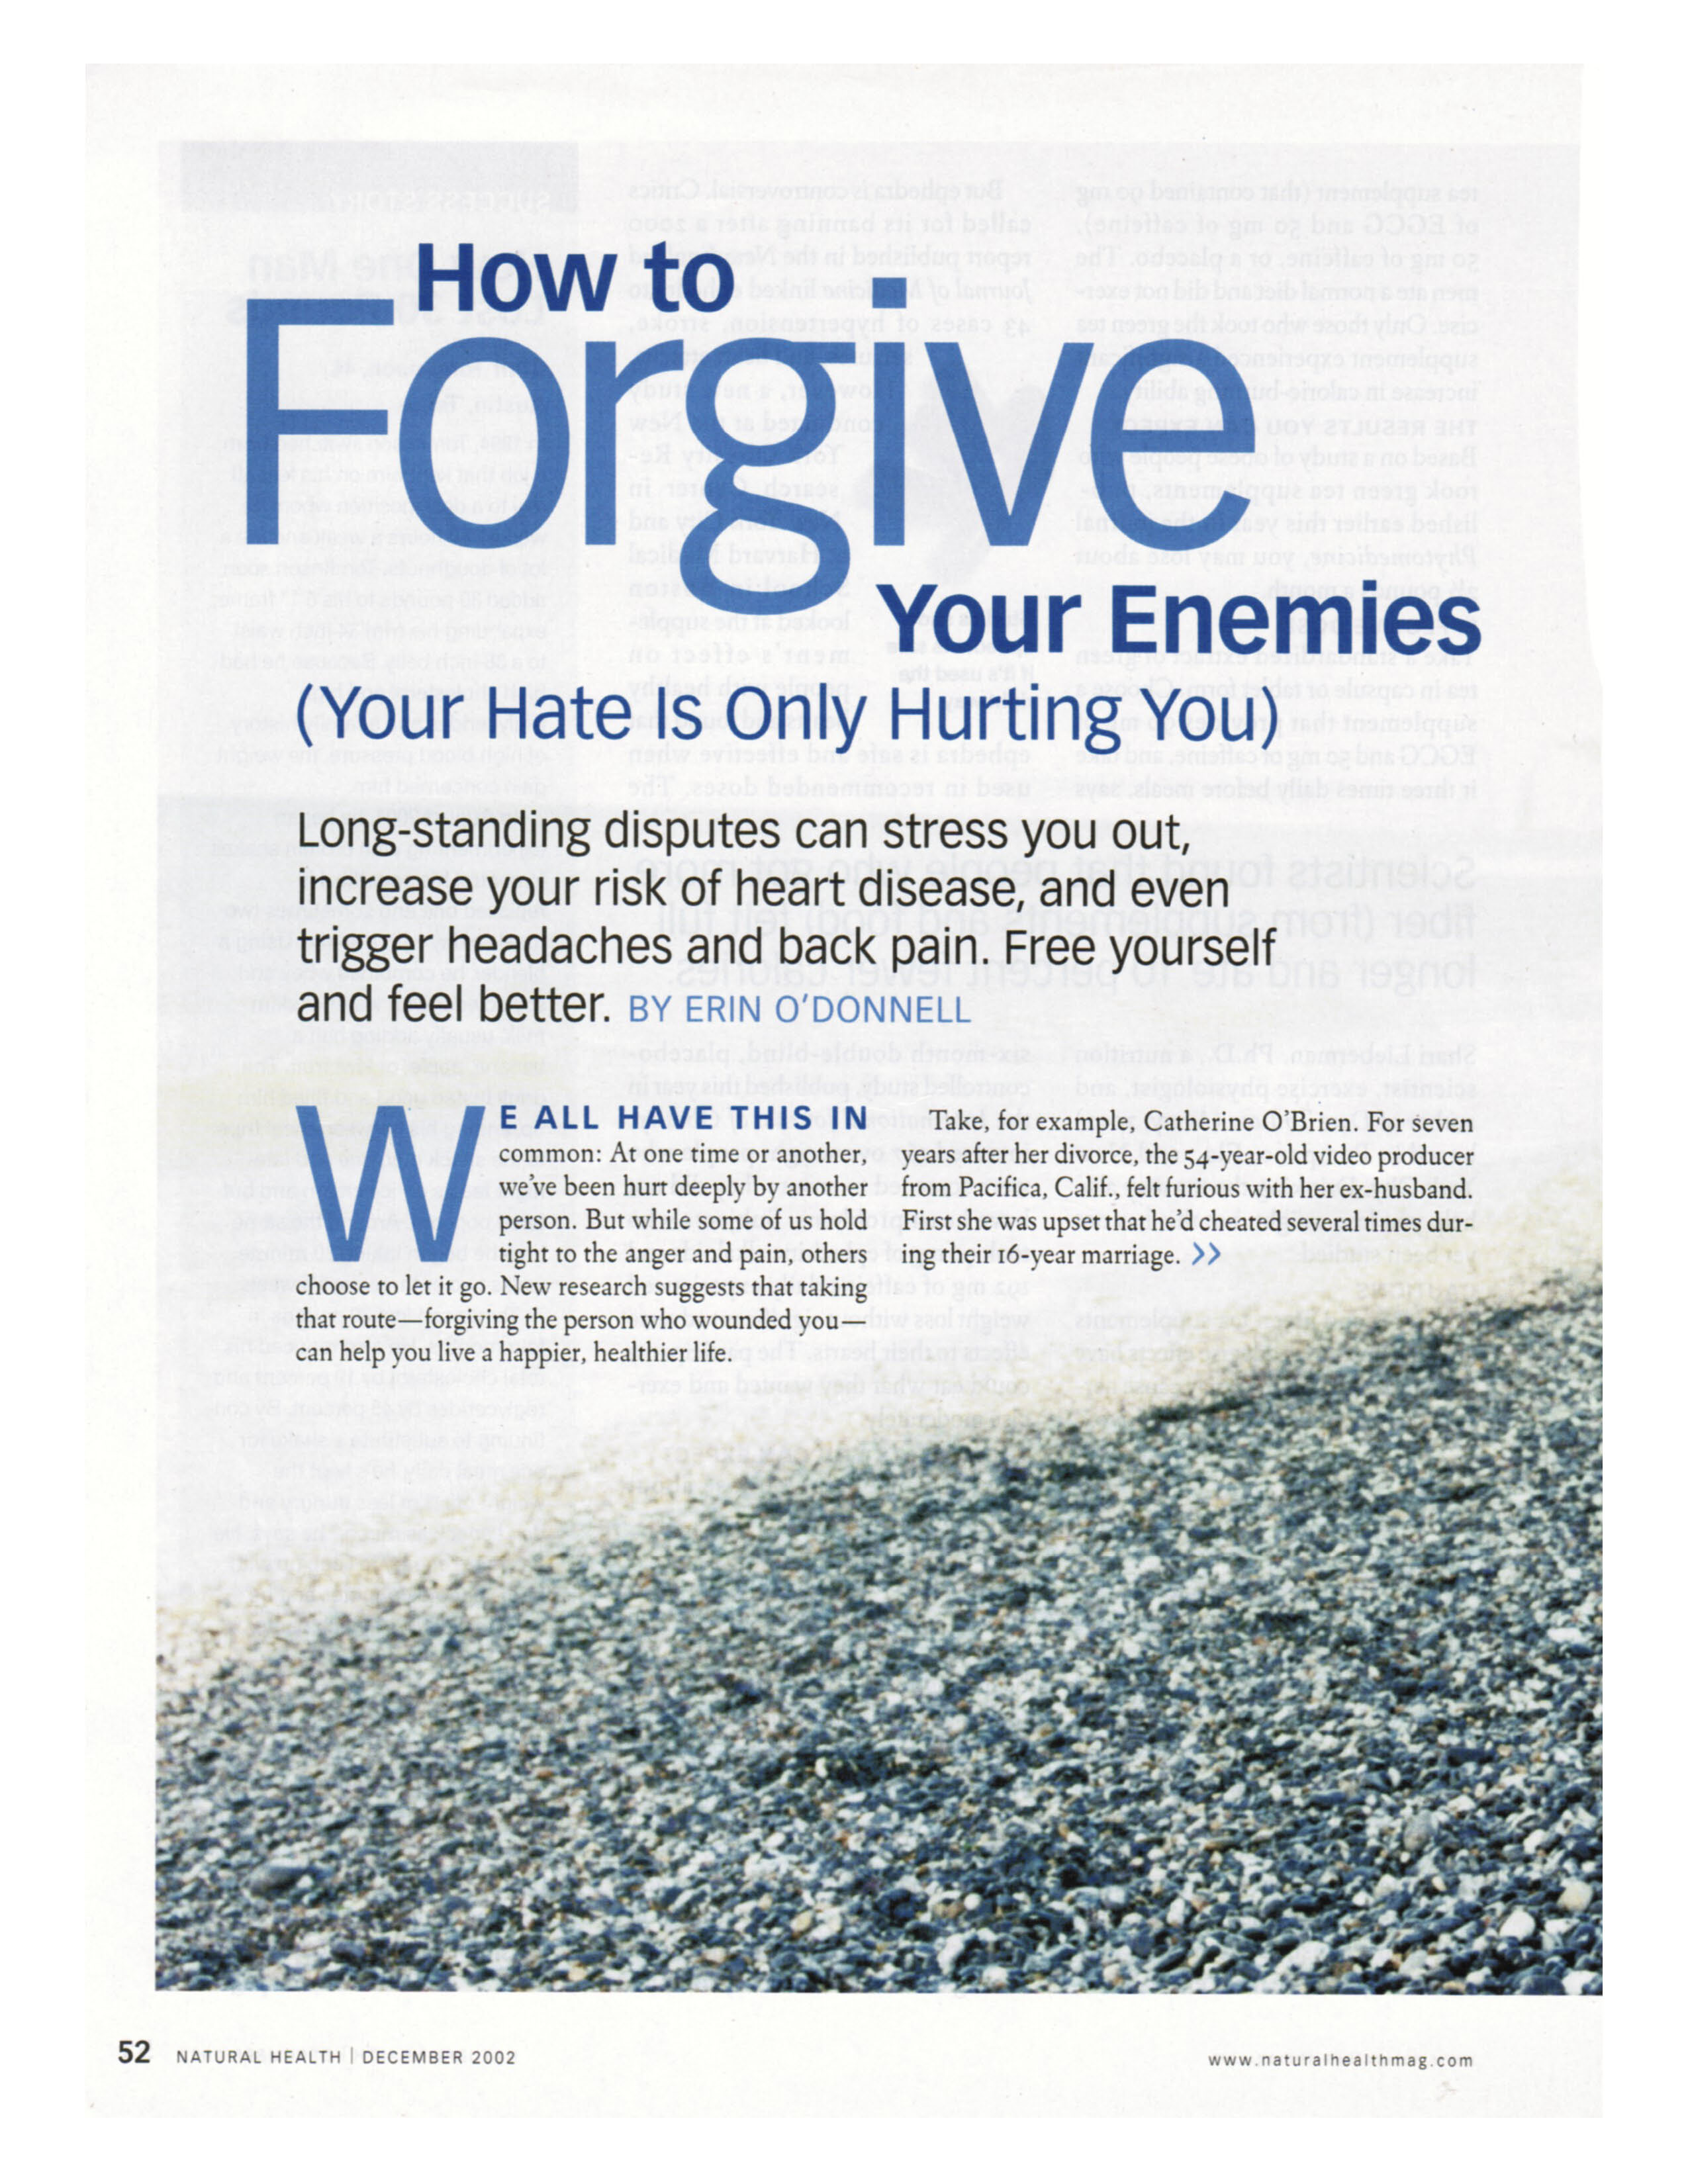 How to Forgive Your Enemies